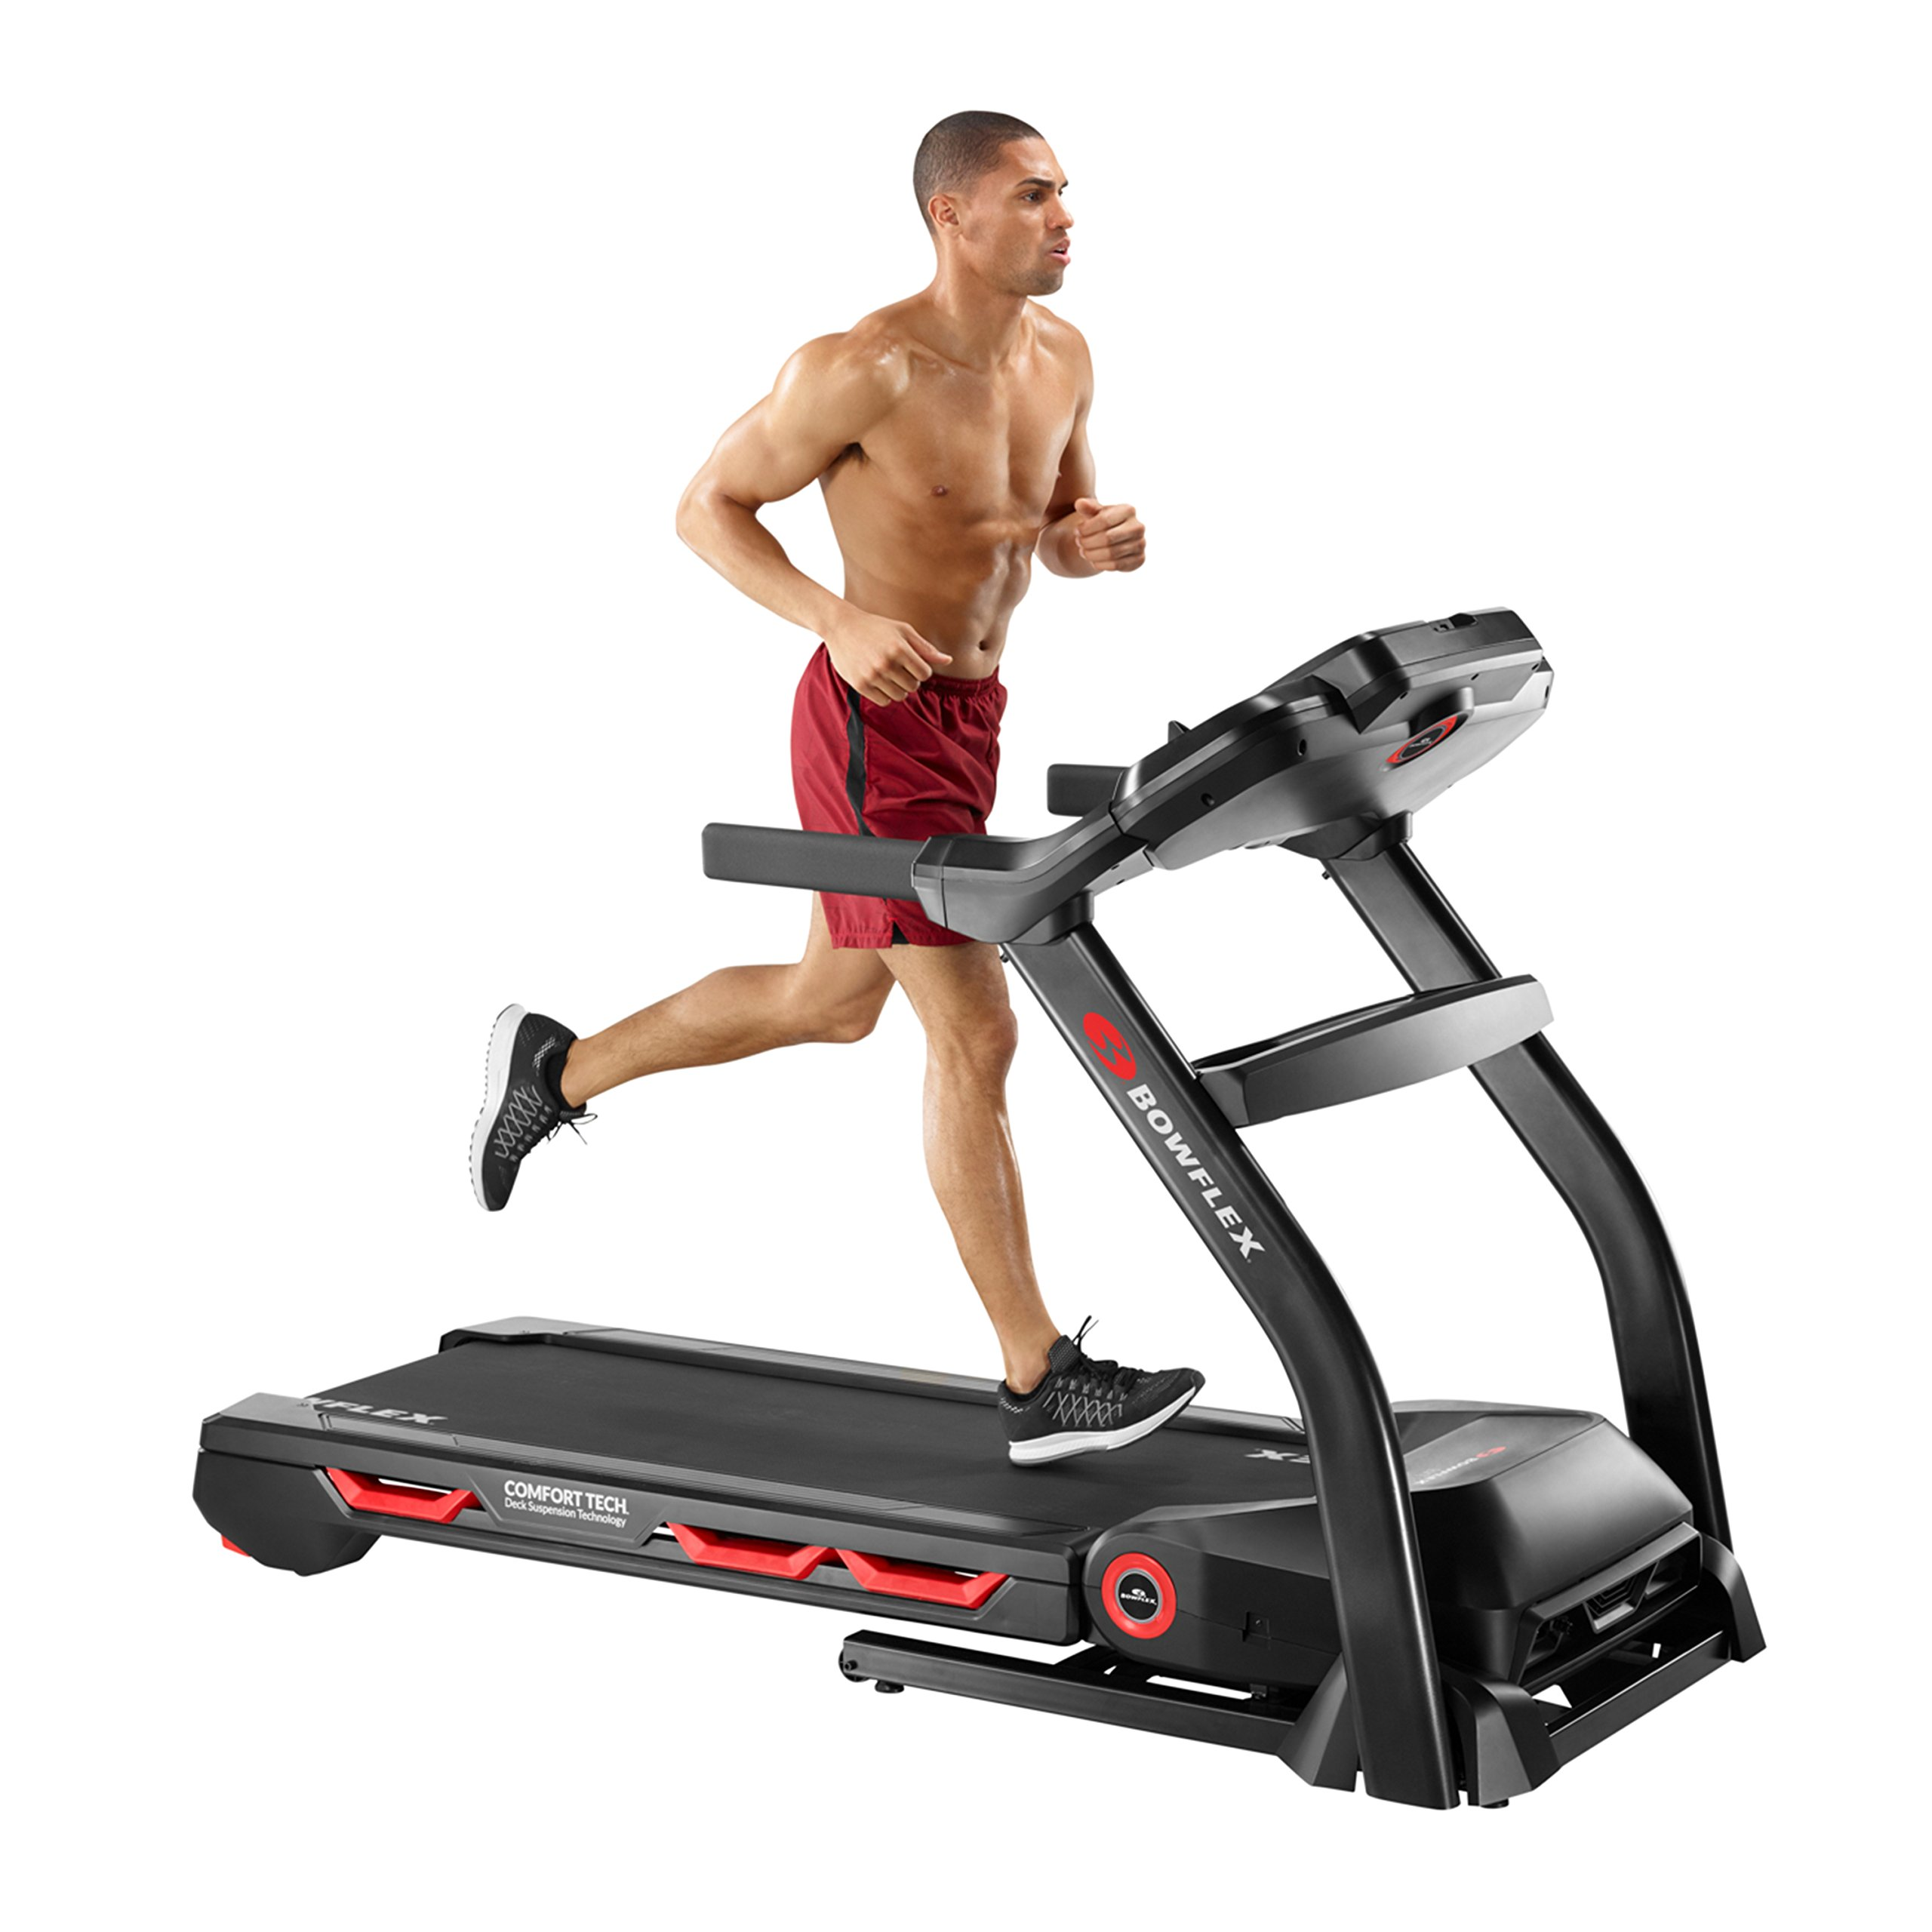 Bowflex BXT116 Treadmill at Amazon